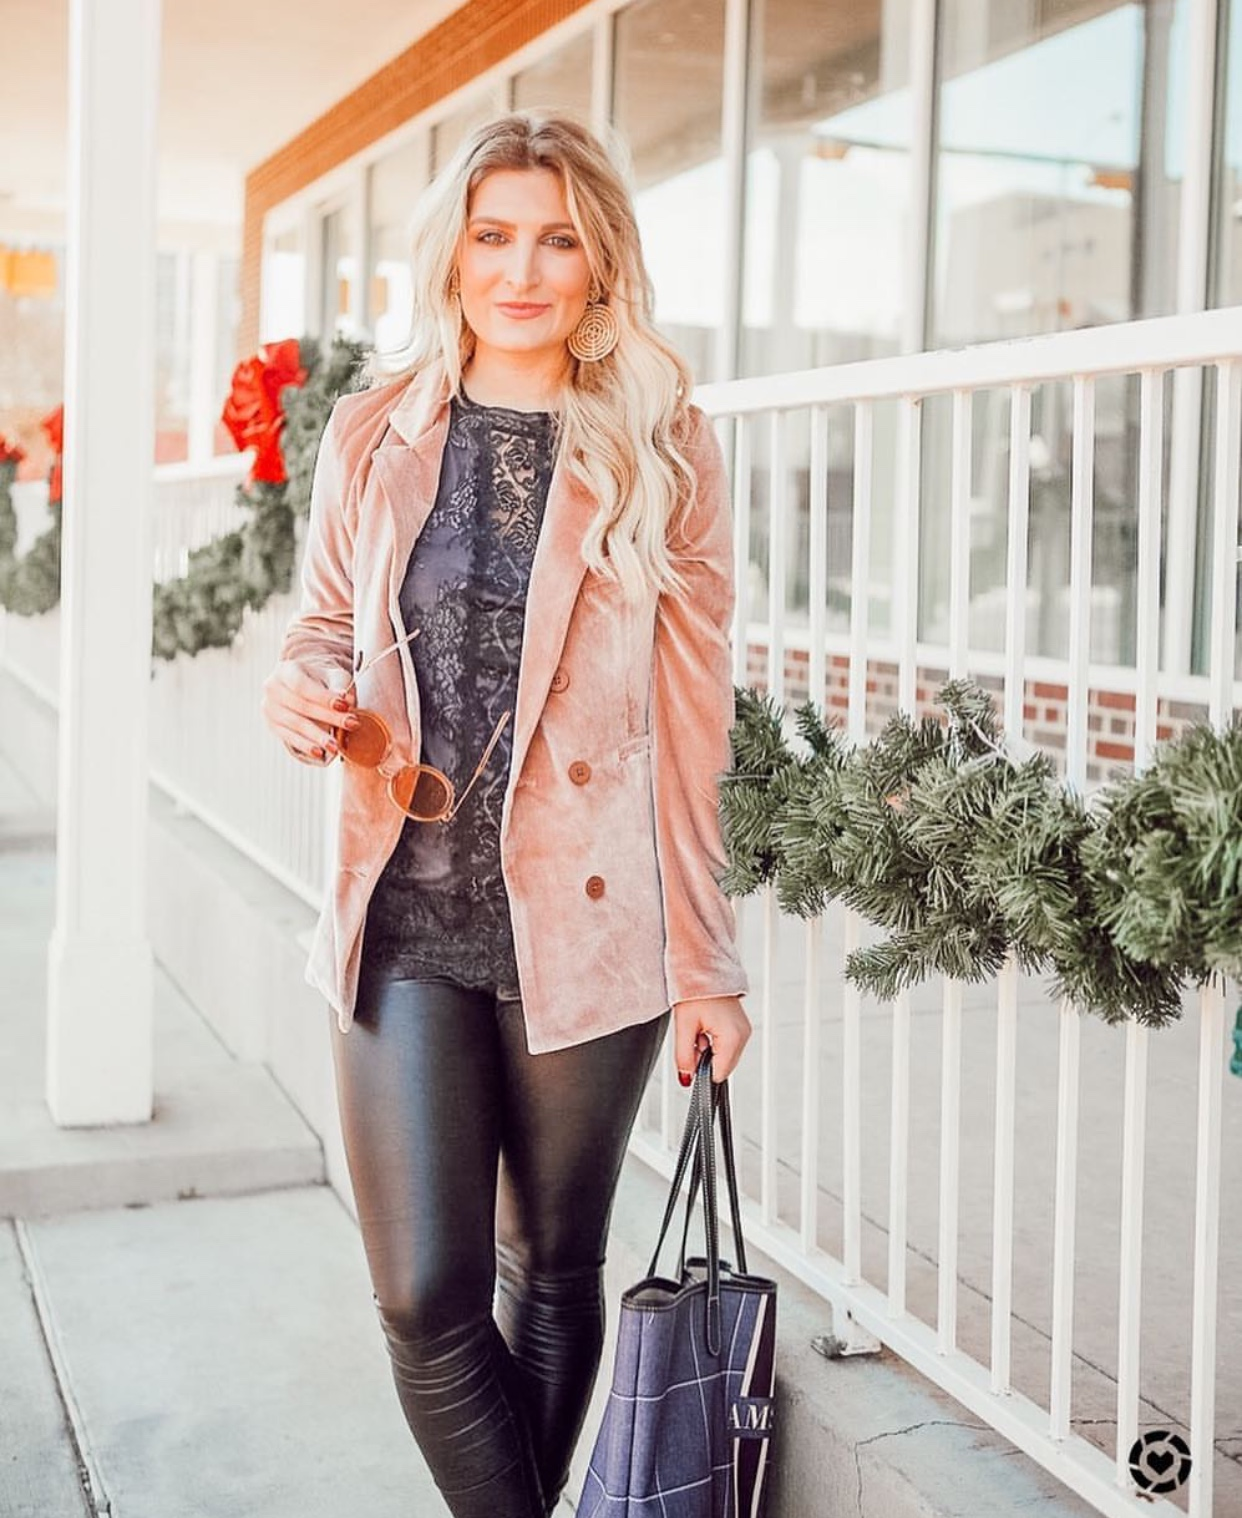 Velvet blazer | Affordable work fashion | Audrey Madison Stowe a fashion and lifestyle blogger